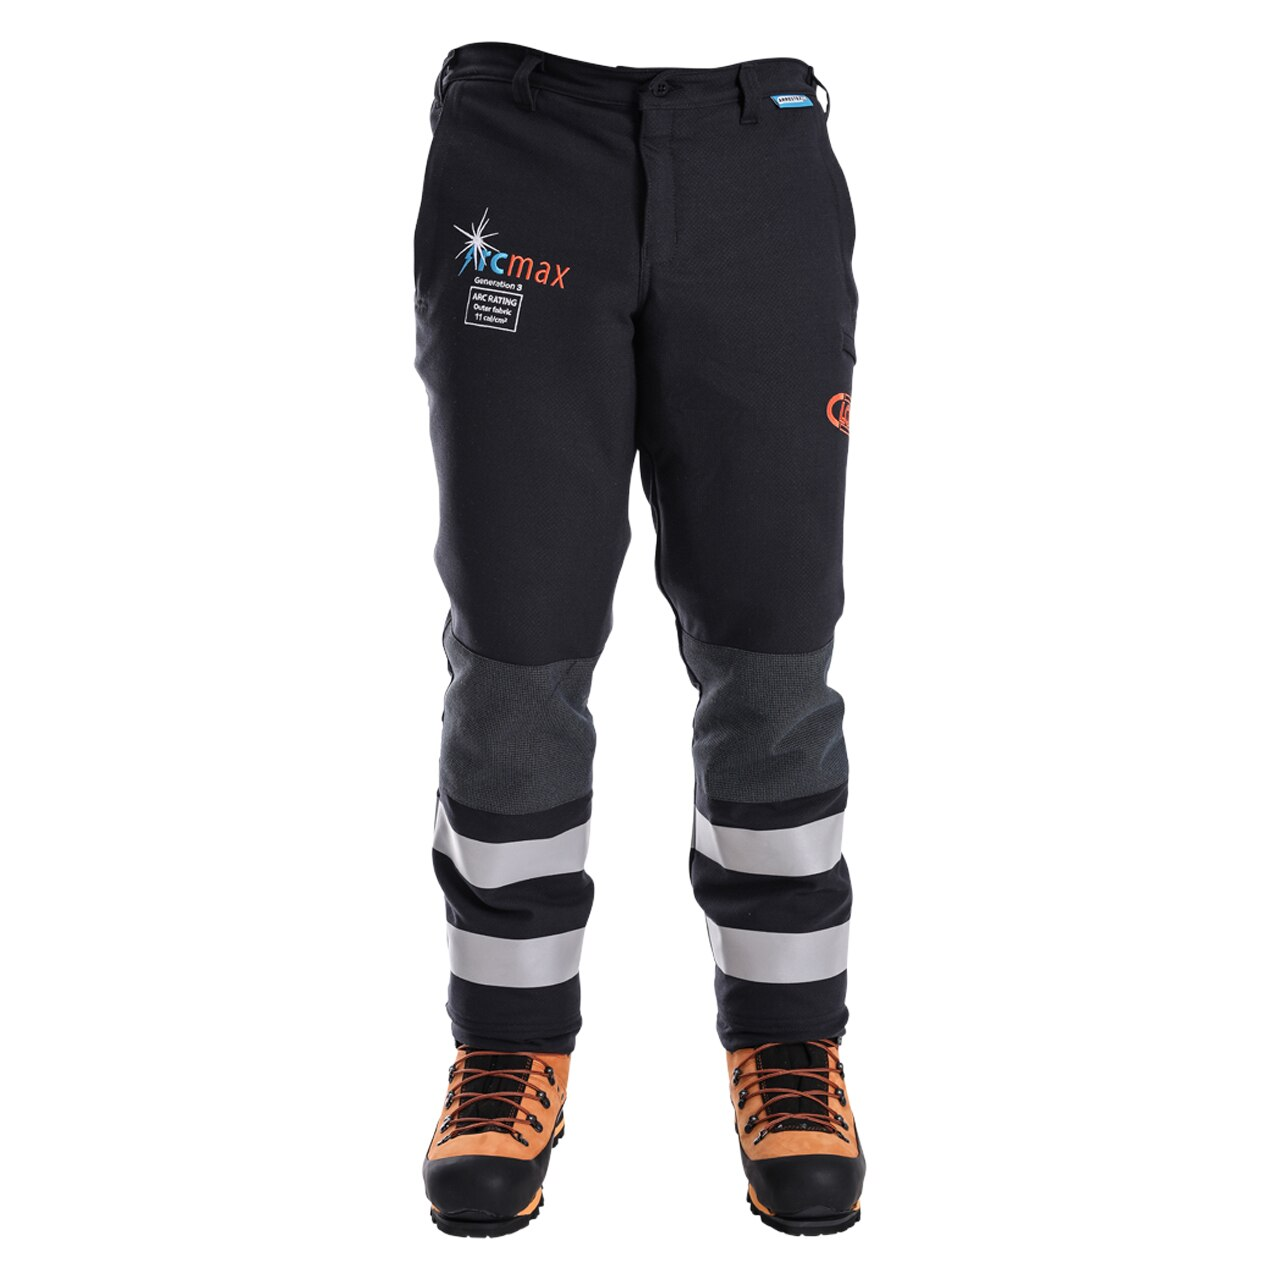 Clogger Arcmax Gen3 Arc Rated Fire Resistant Men's Premium 360 Wrap Chainsaw Pants (Now With Stretch)